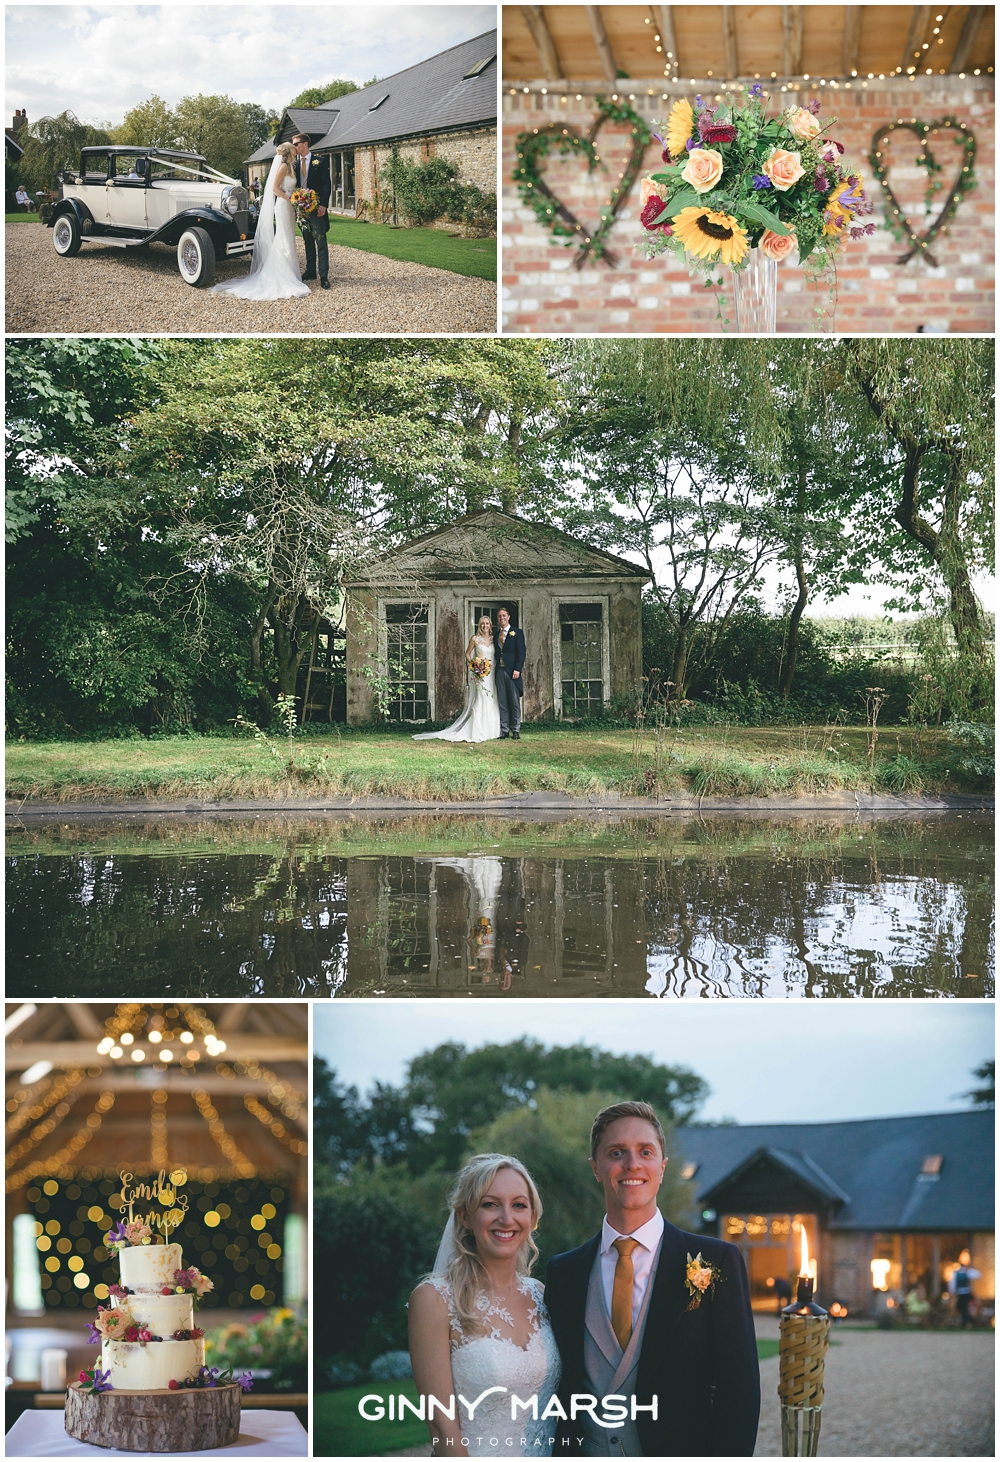 The Long Barn Wedding Venue | Ginny Marsh Photography